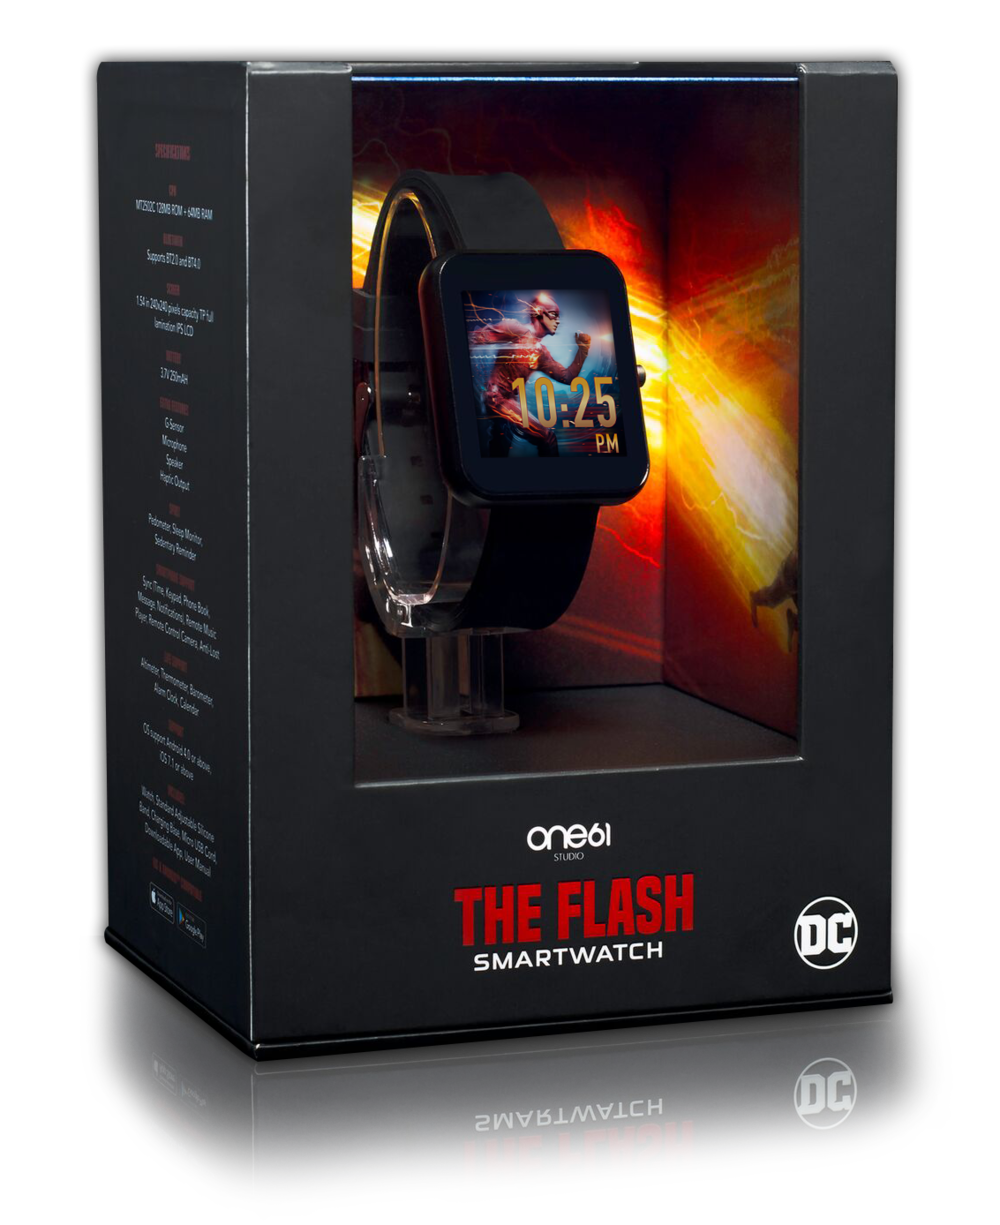 Smart--Watch--The--Flash--In-Package--Web.png